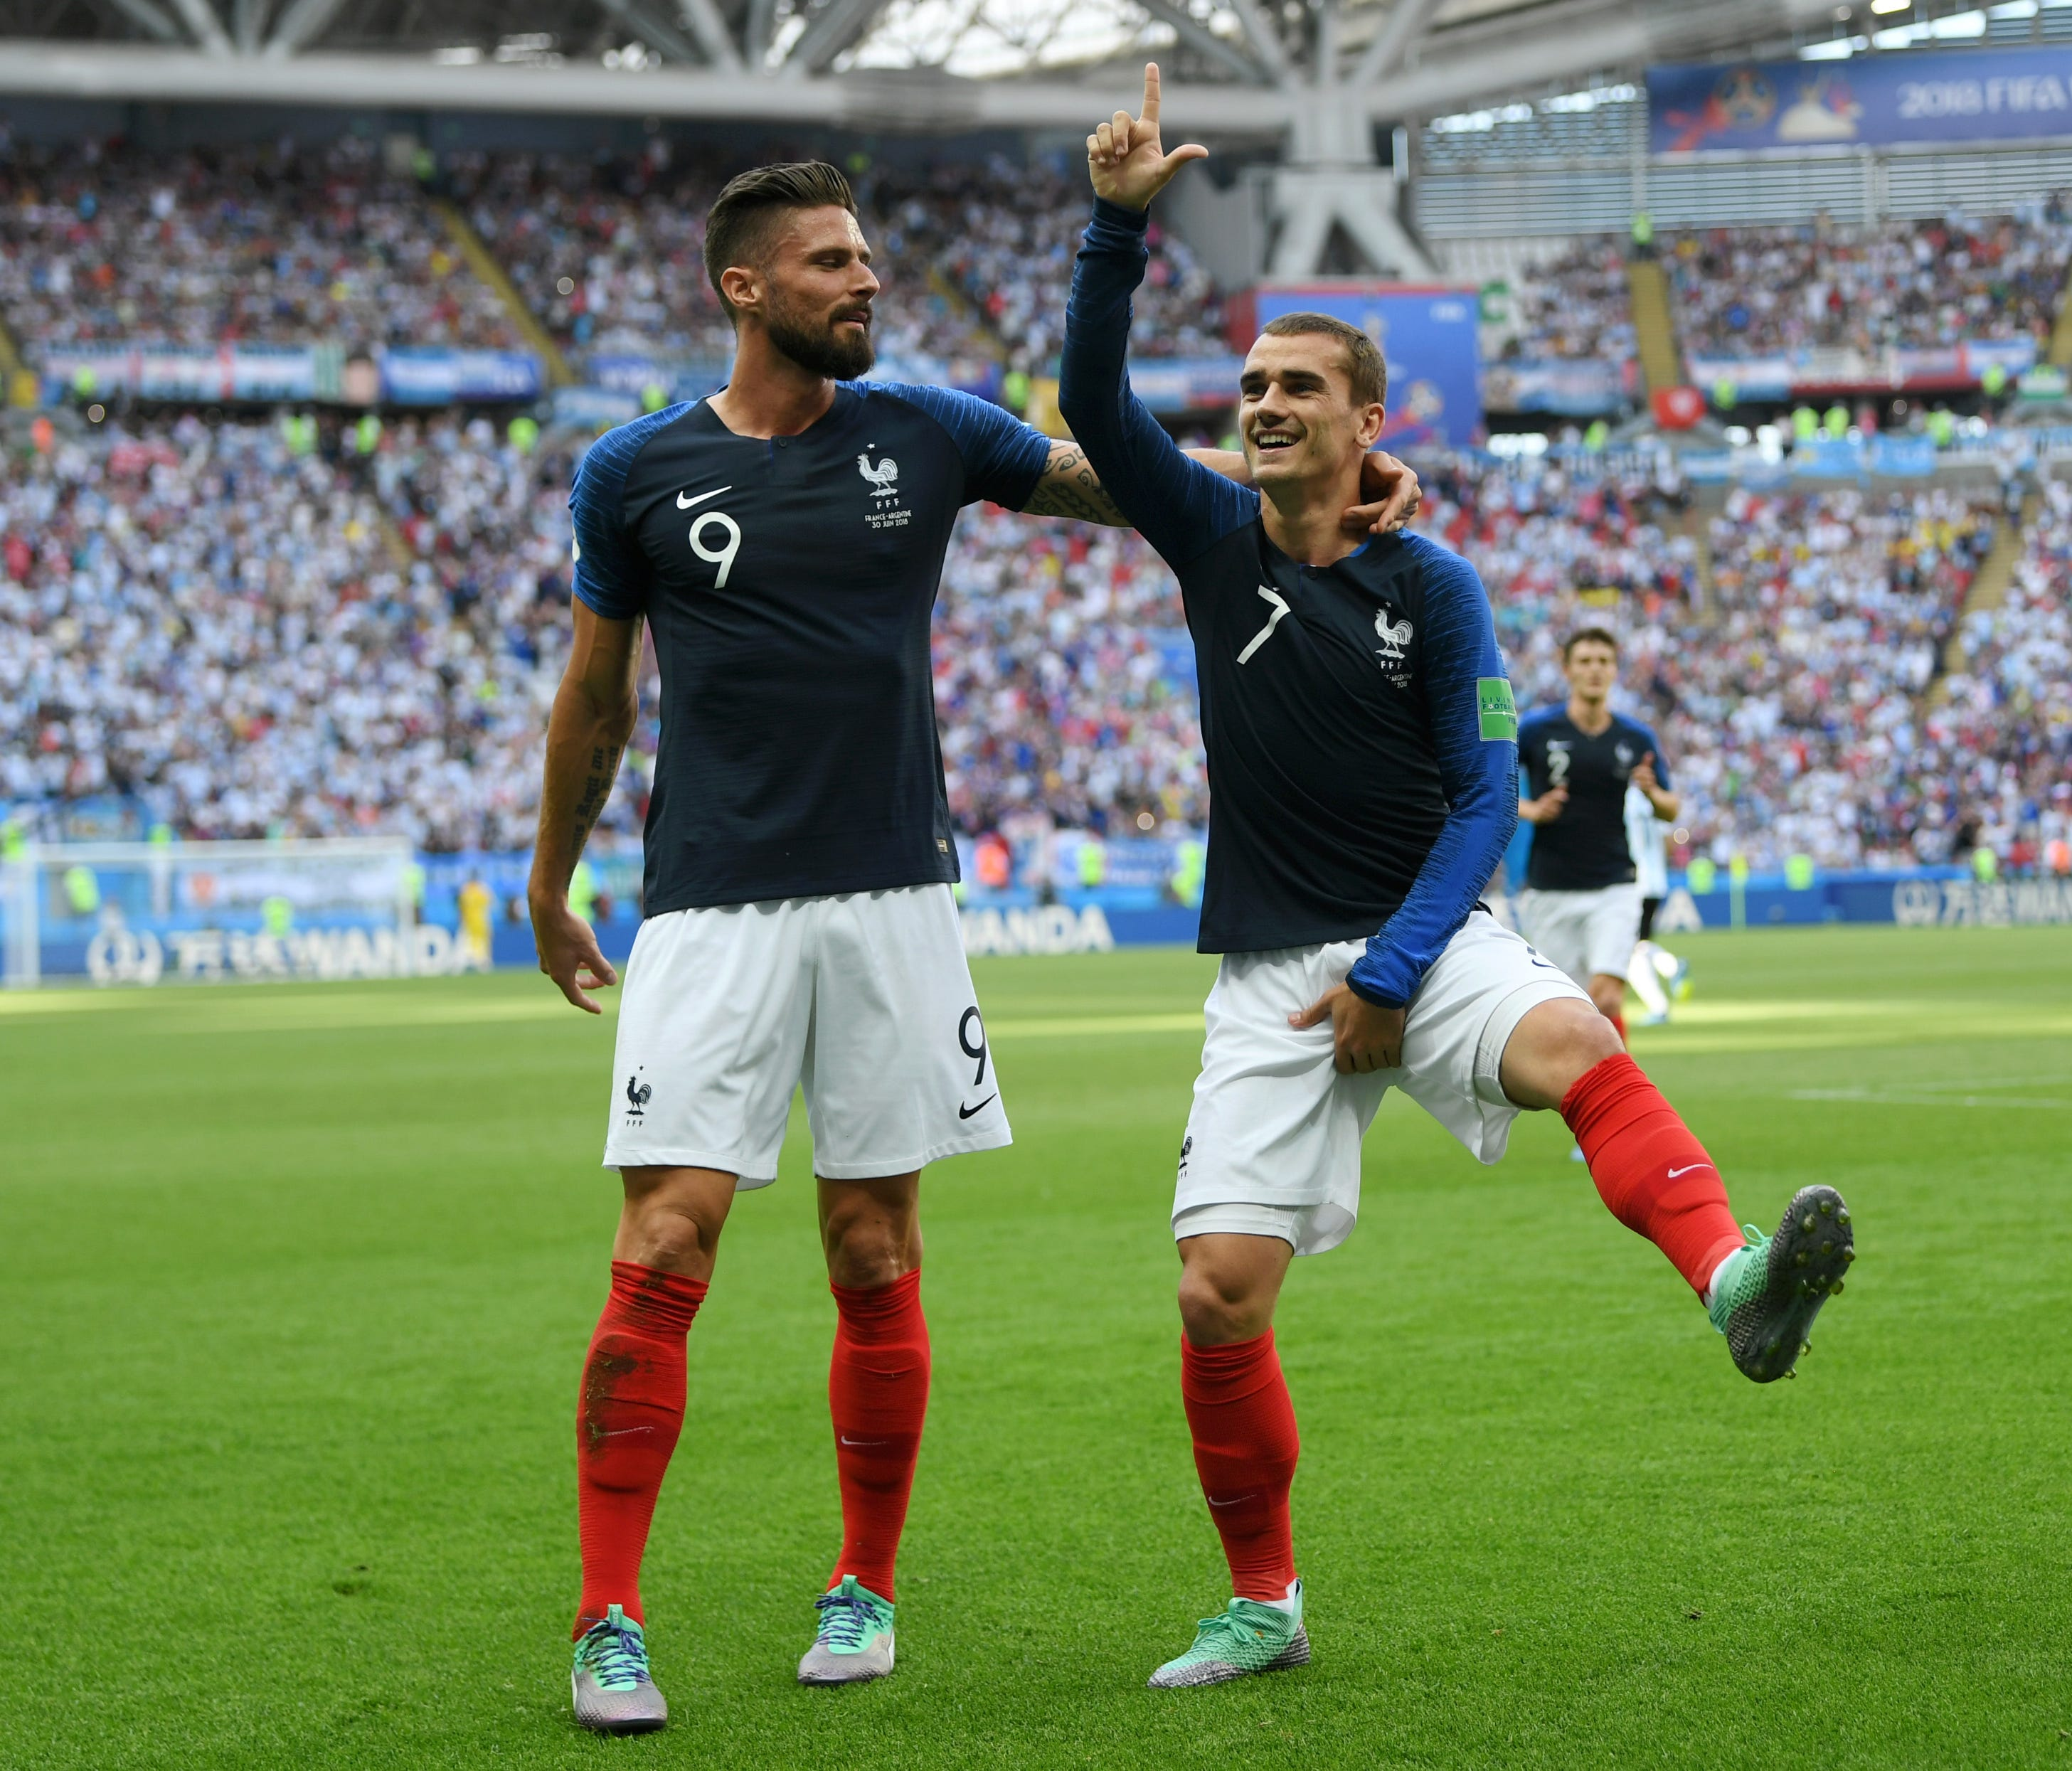 France's Antoine Griezmann celebrates with teammate Olivier Giroud after scoring his team's first goal during the 2018 FIFA World Cup Russia Round of 16 match between France and Argentina.